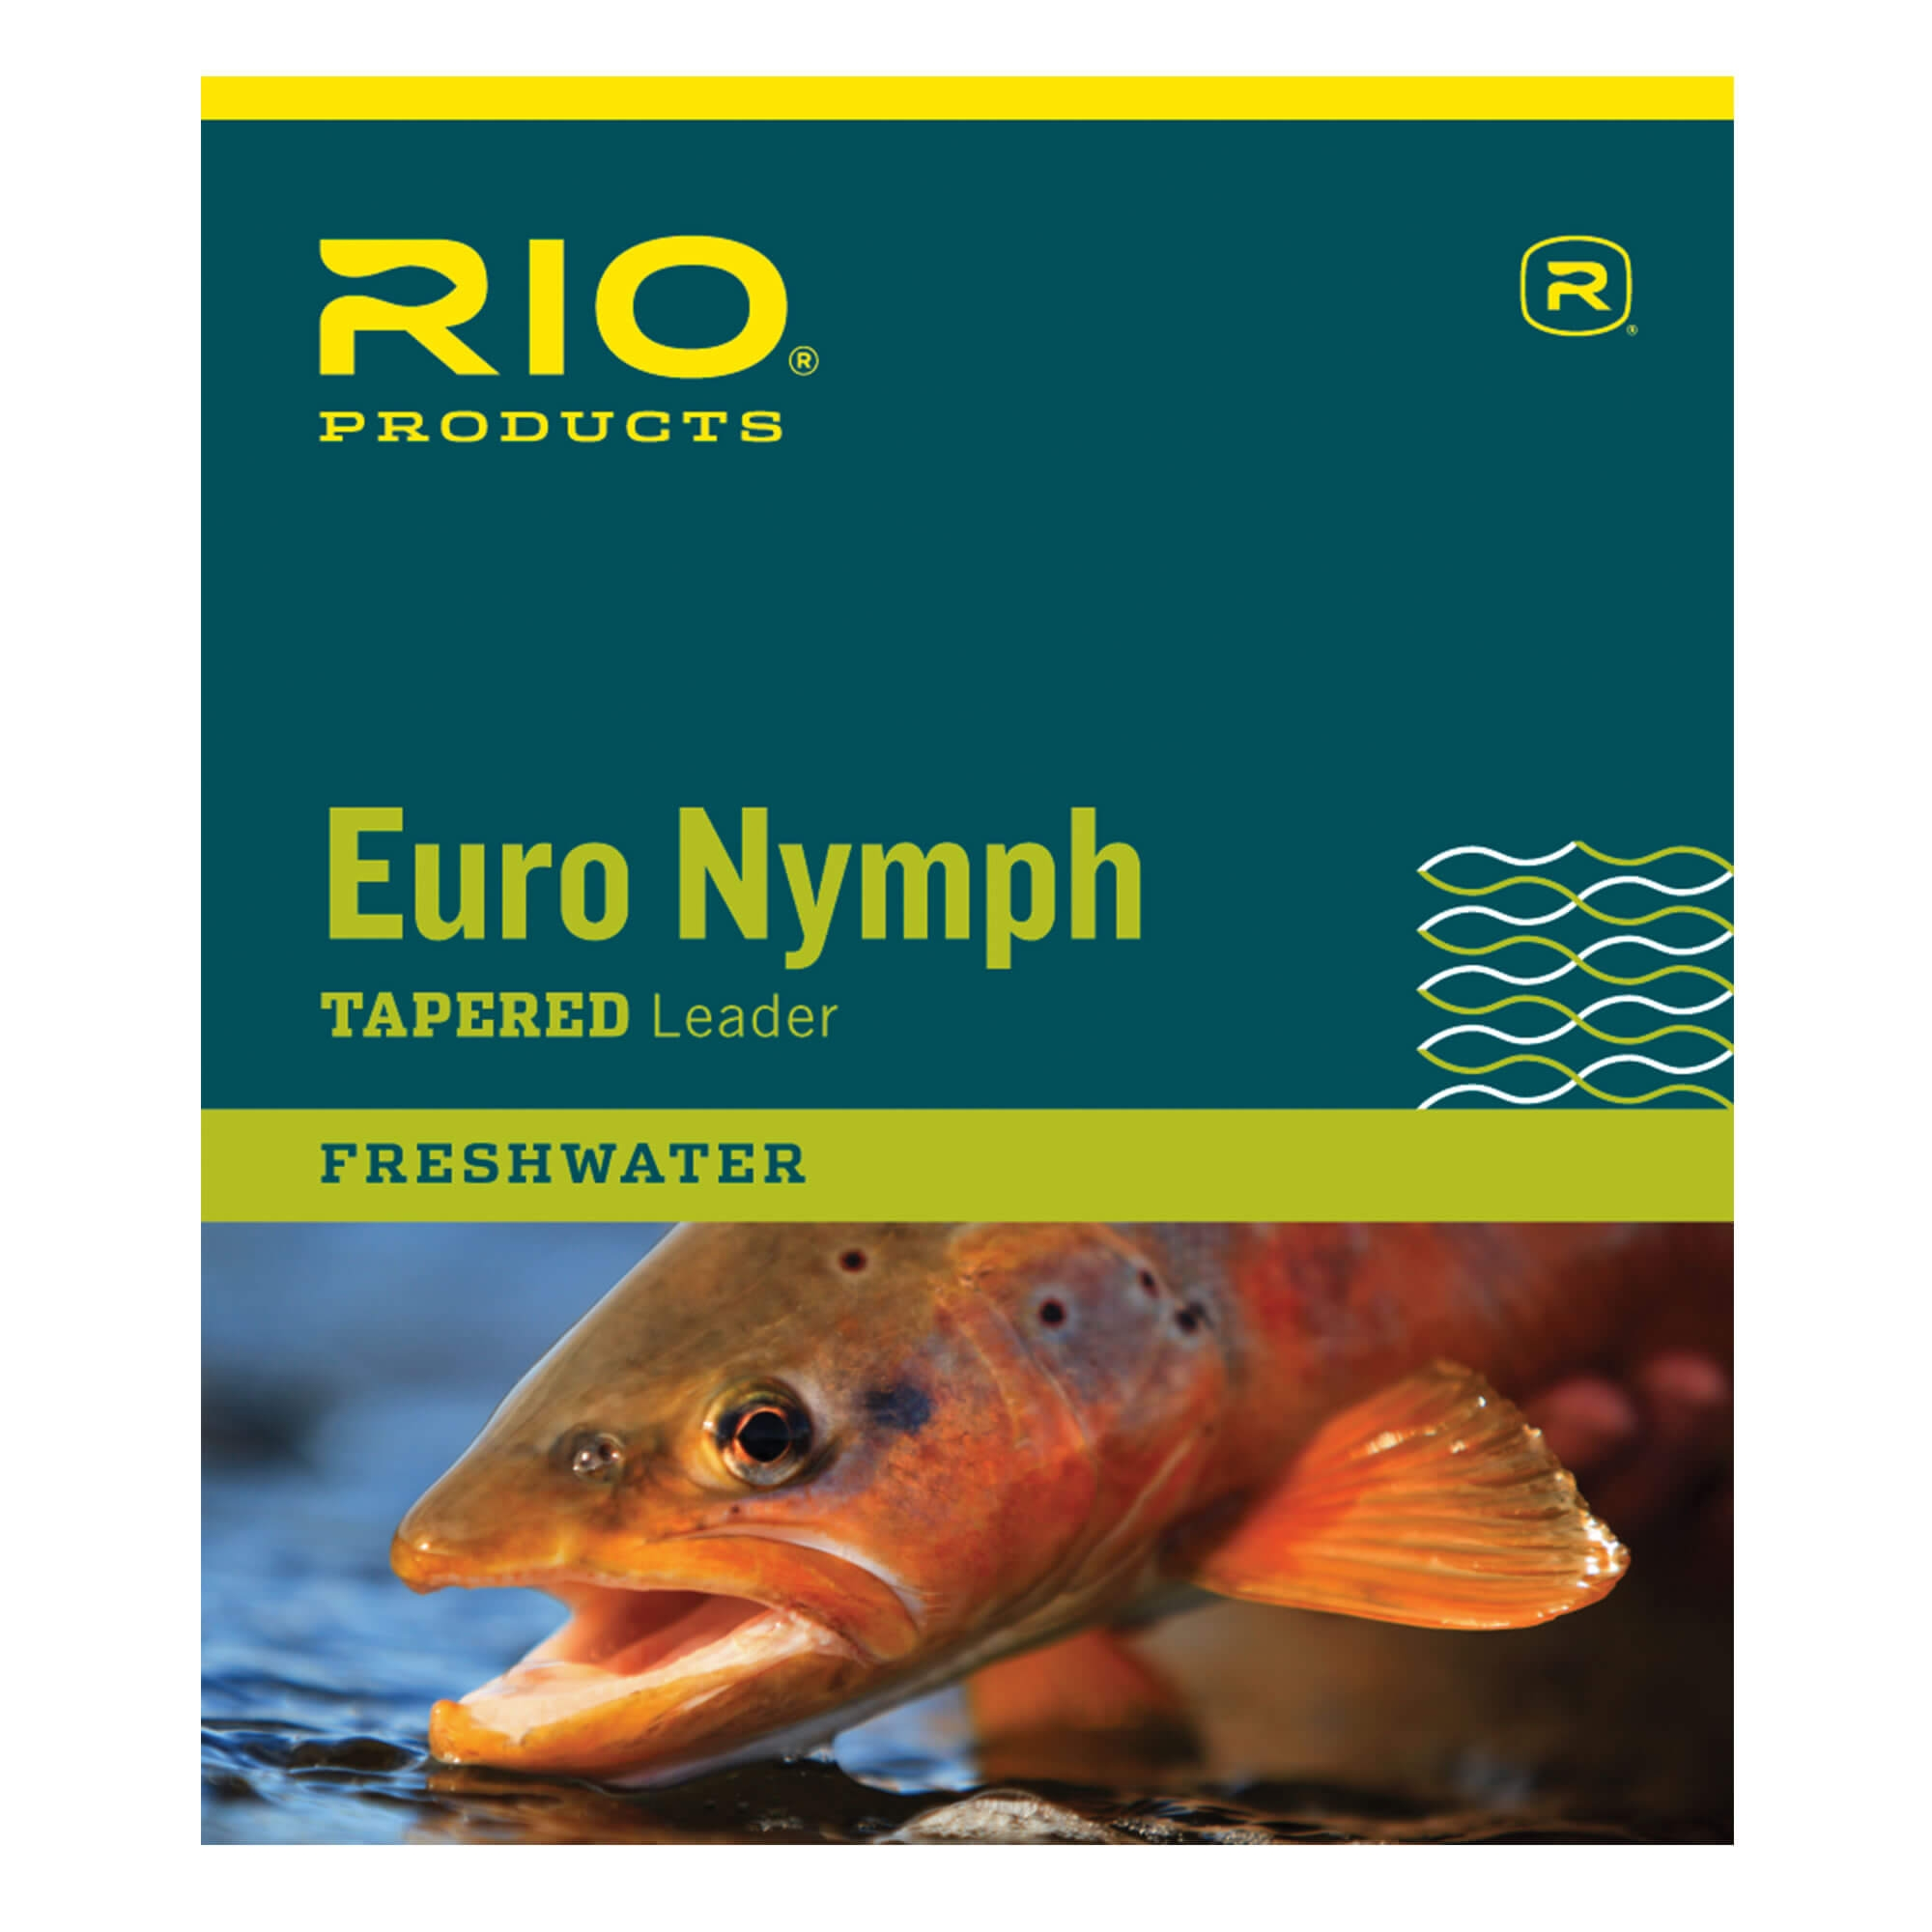 Freshwater Tapered Leader Euro Nymph